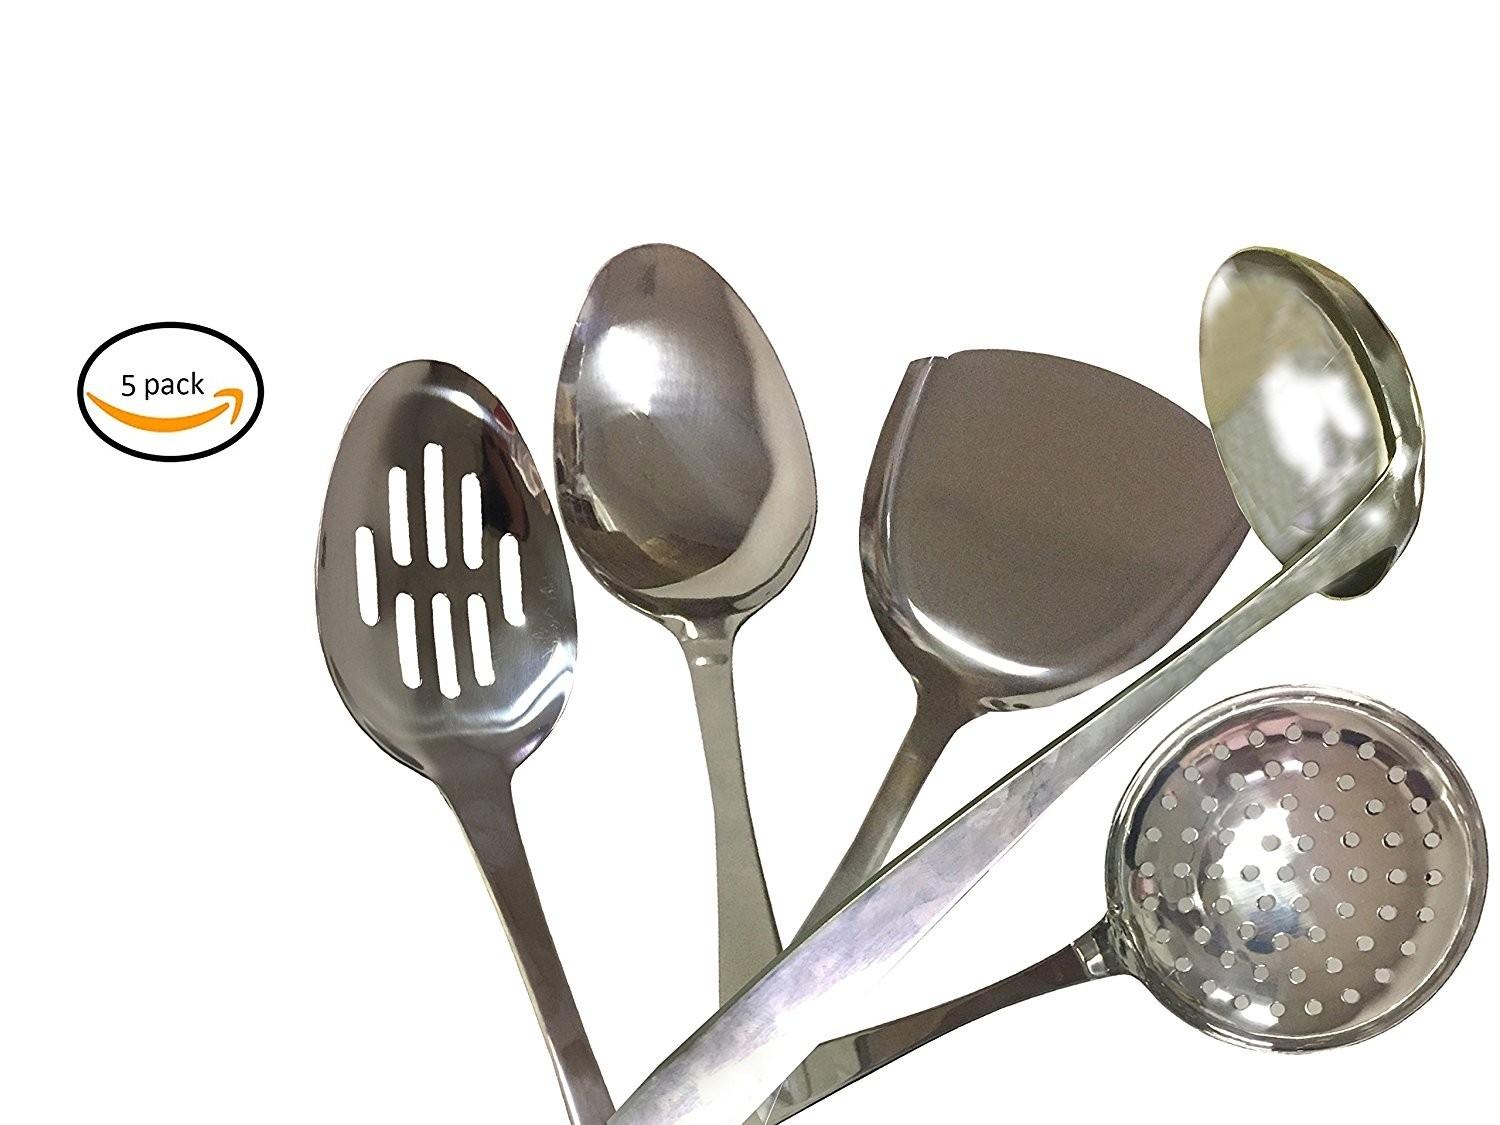 Bioexcel 5 Pcs Stainless Steel Kitchen Utensil Set, Cooking Serving Spoons  Set   All Mix